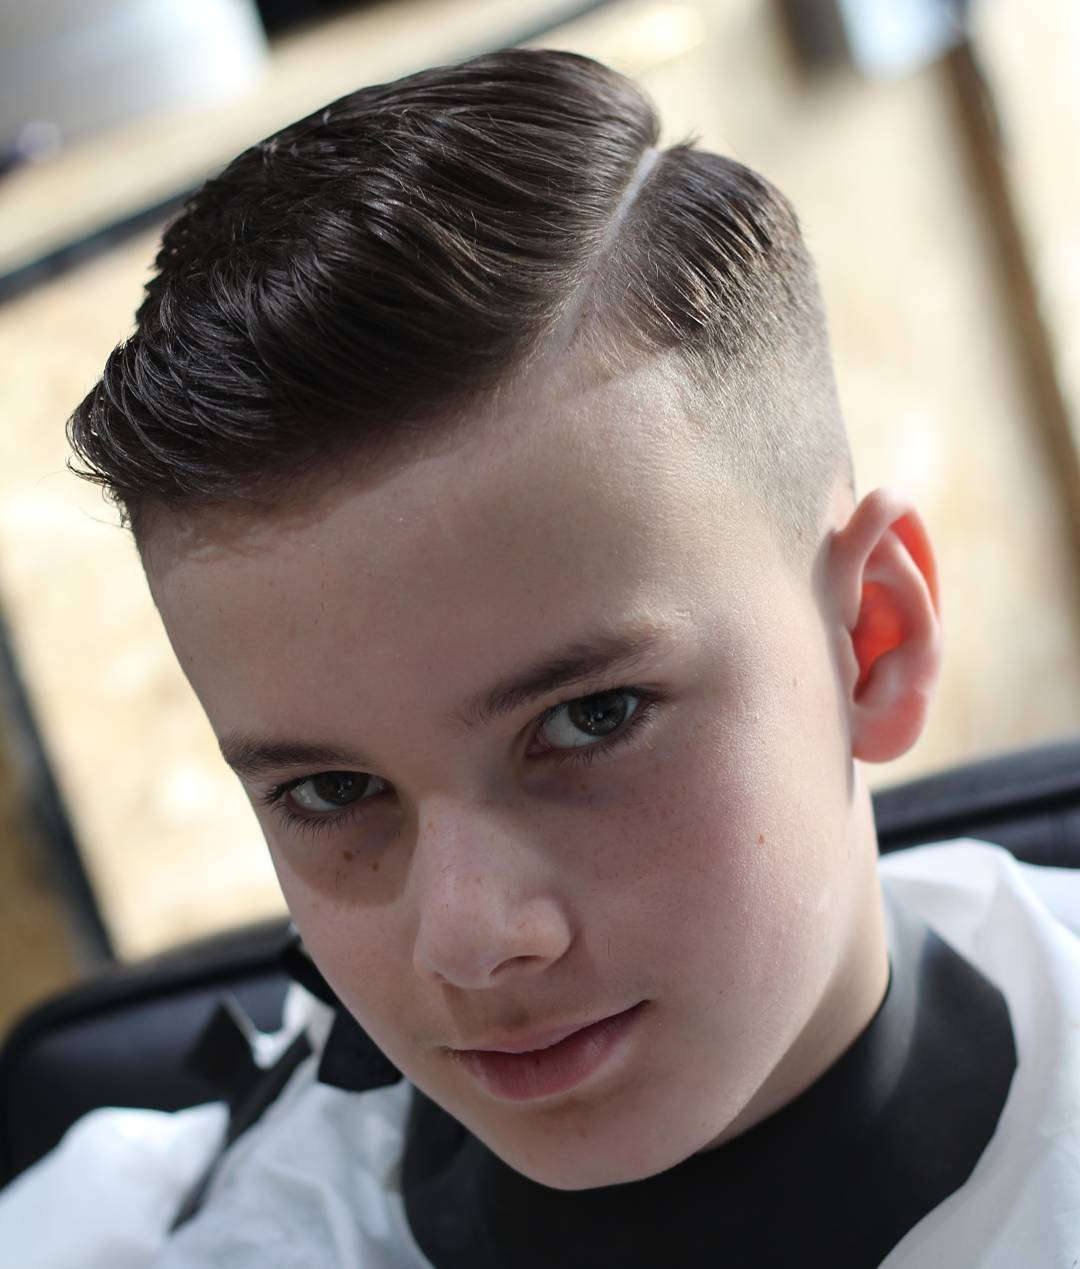 Low-Spikes-with-Side-Undercut Cute Haircuts for Boys for Charming Look